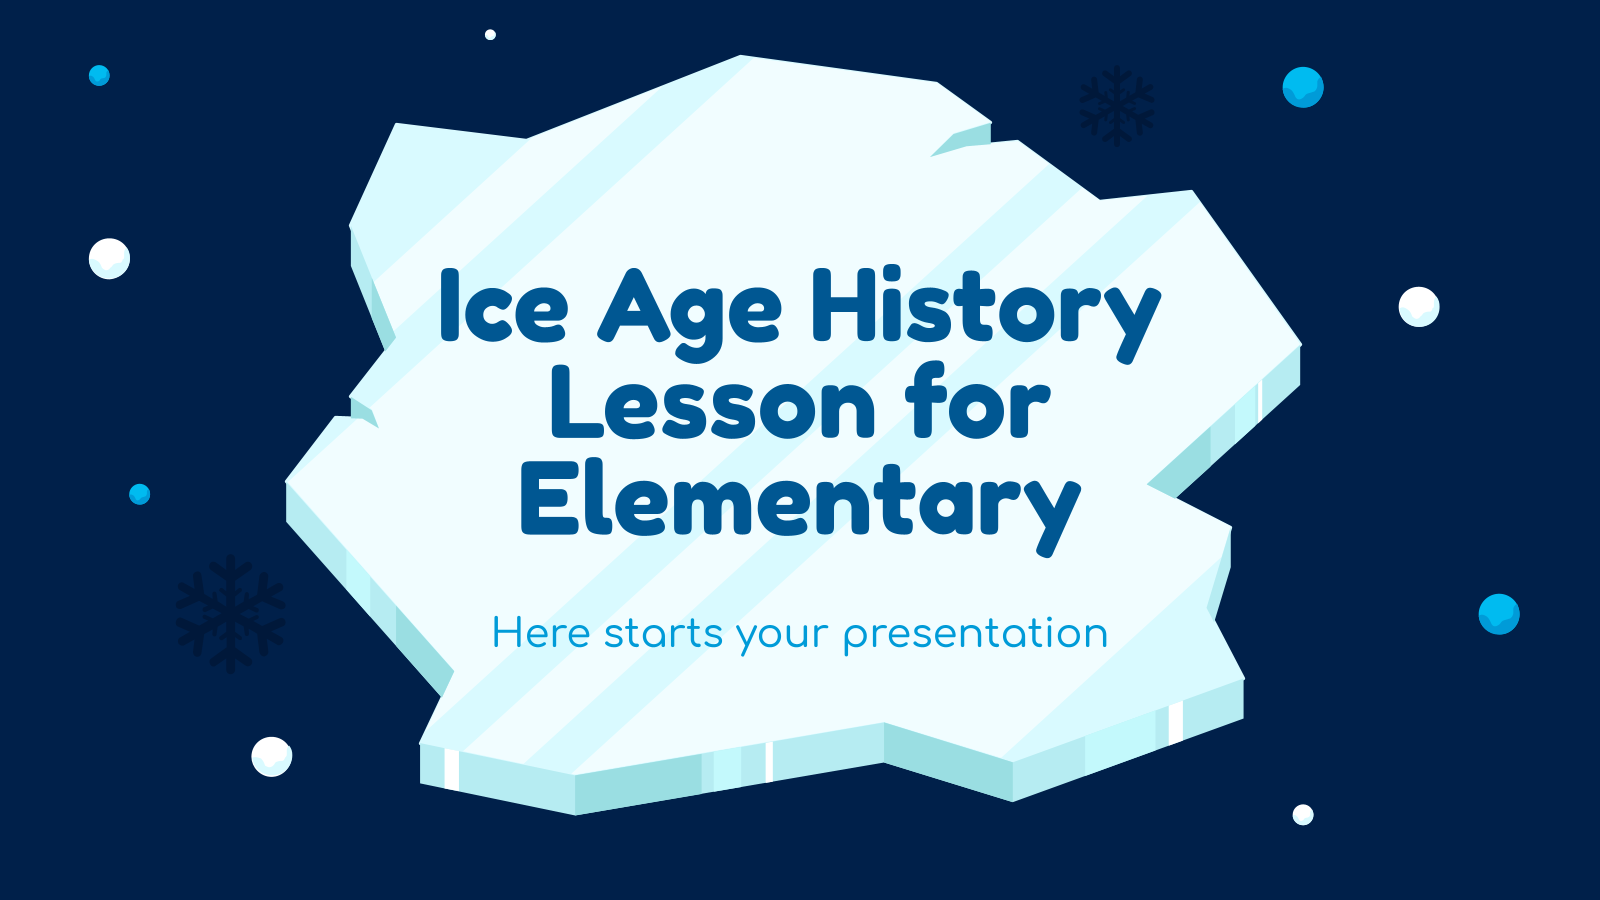 Ice Age History Lesson for Elementary presentation template